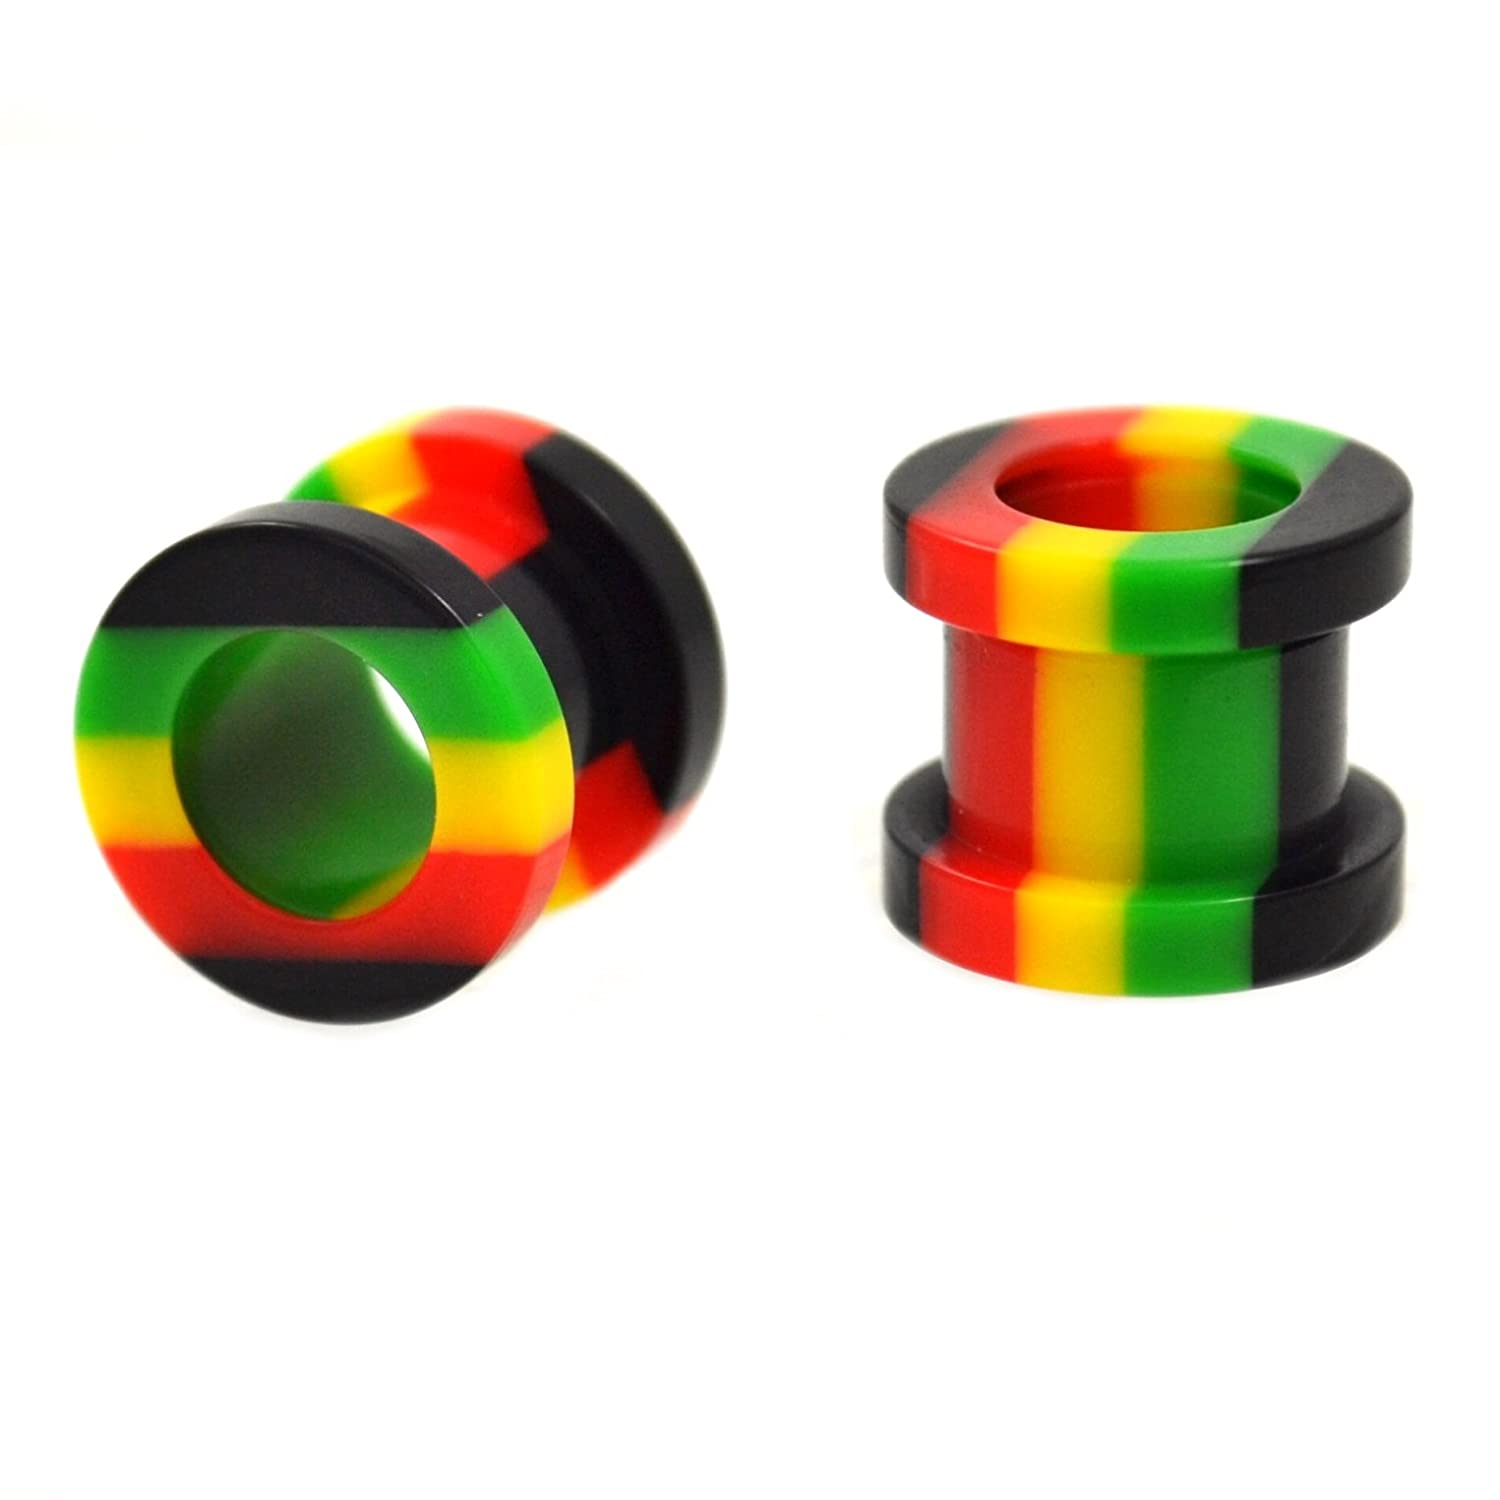 Pair (2) Rasta Jamaican Colors (Yellow, Green, Red) Acrylic Ear Plugs Screw Fit Tunnels - 0G 8MM